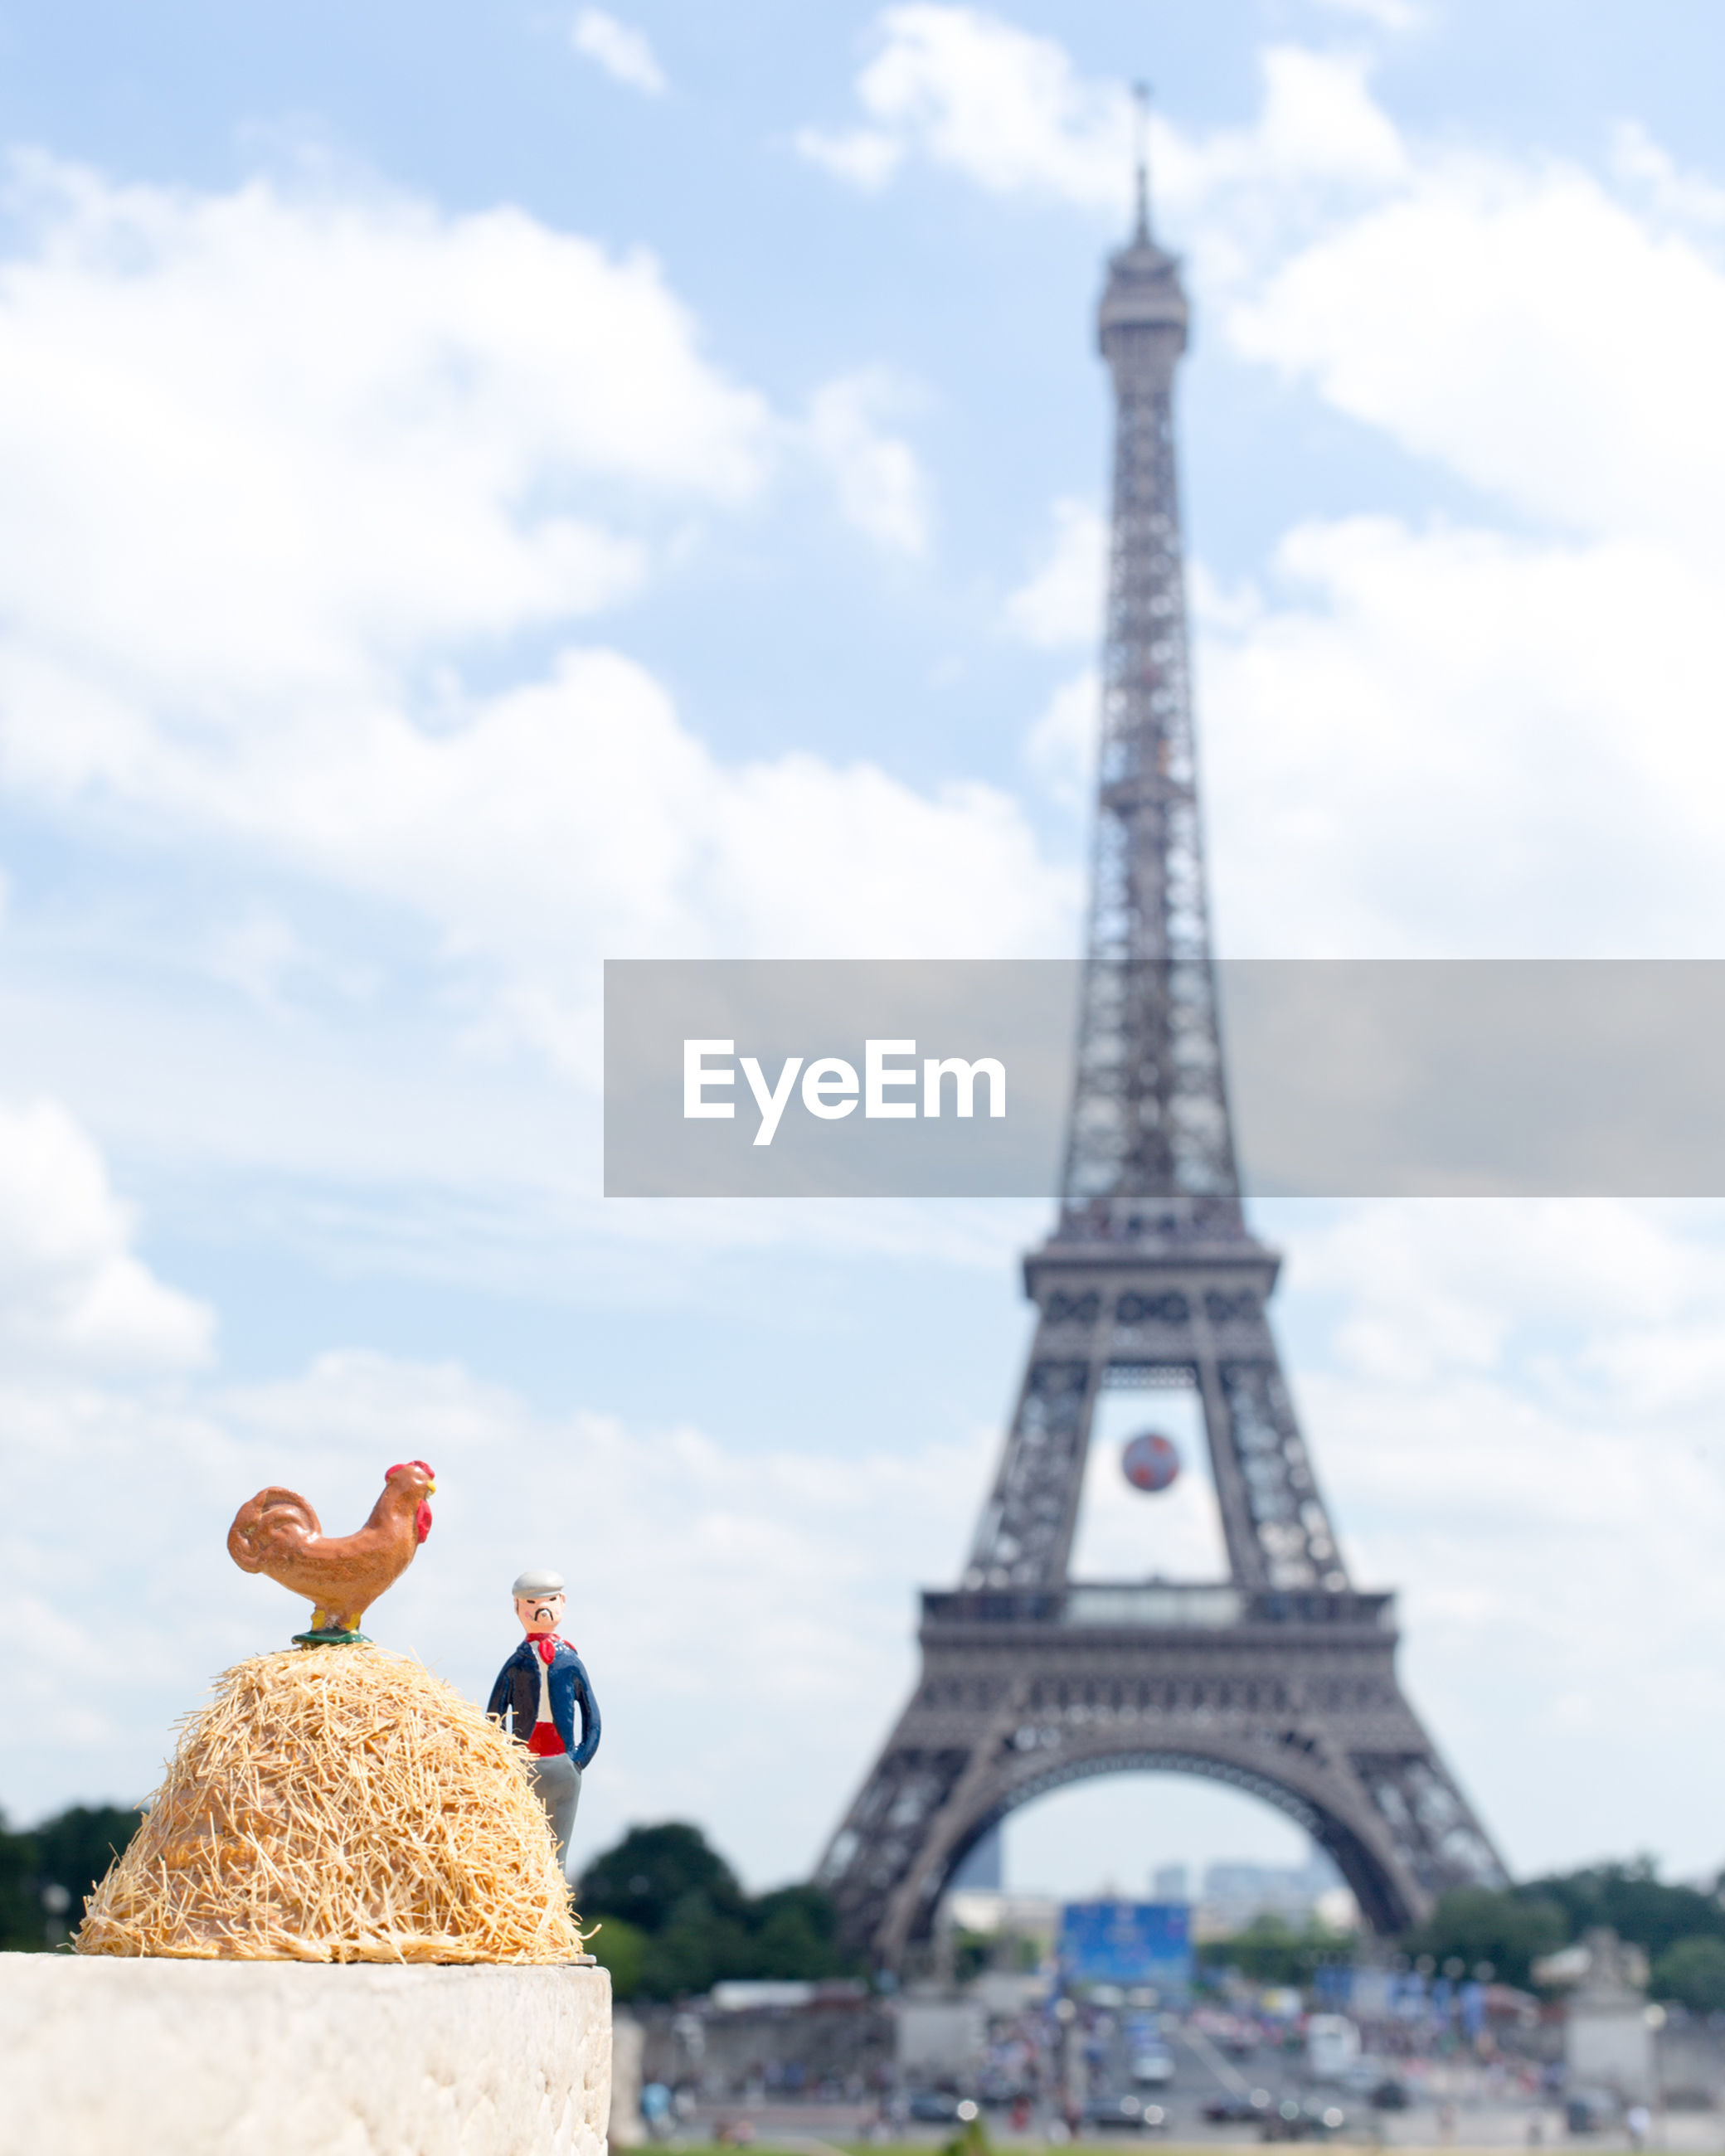 Figurines Against Eiffel Tower In City